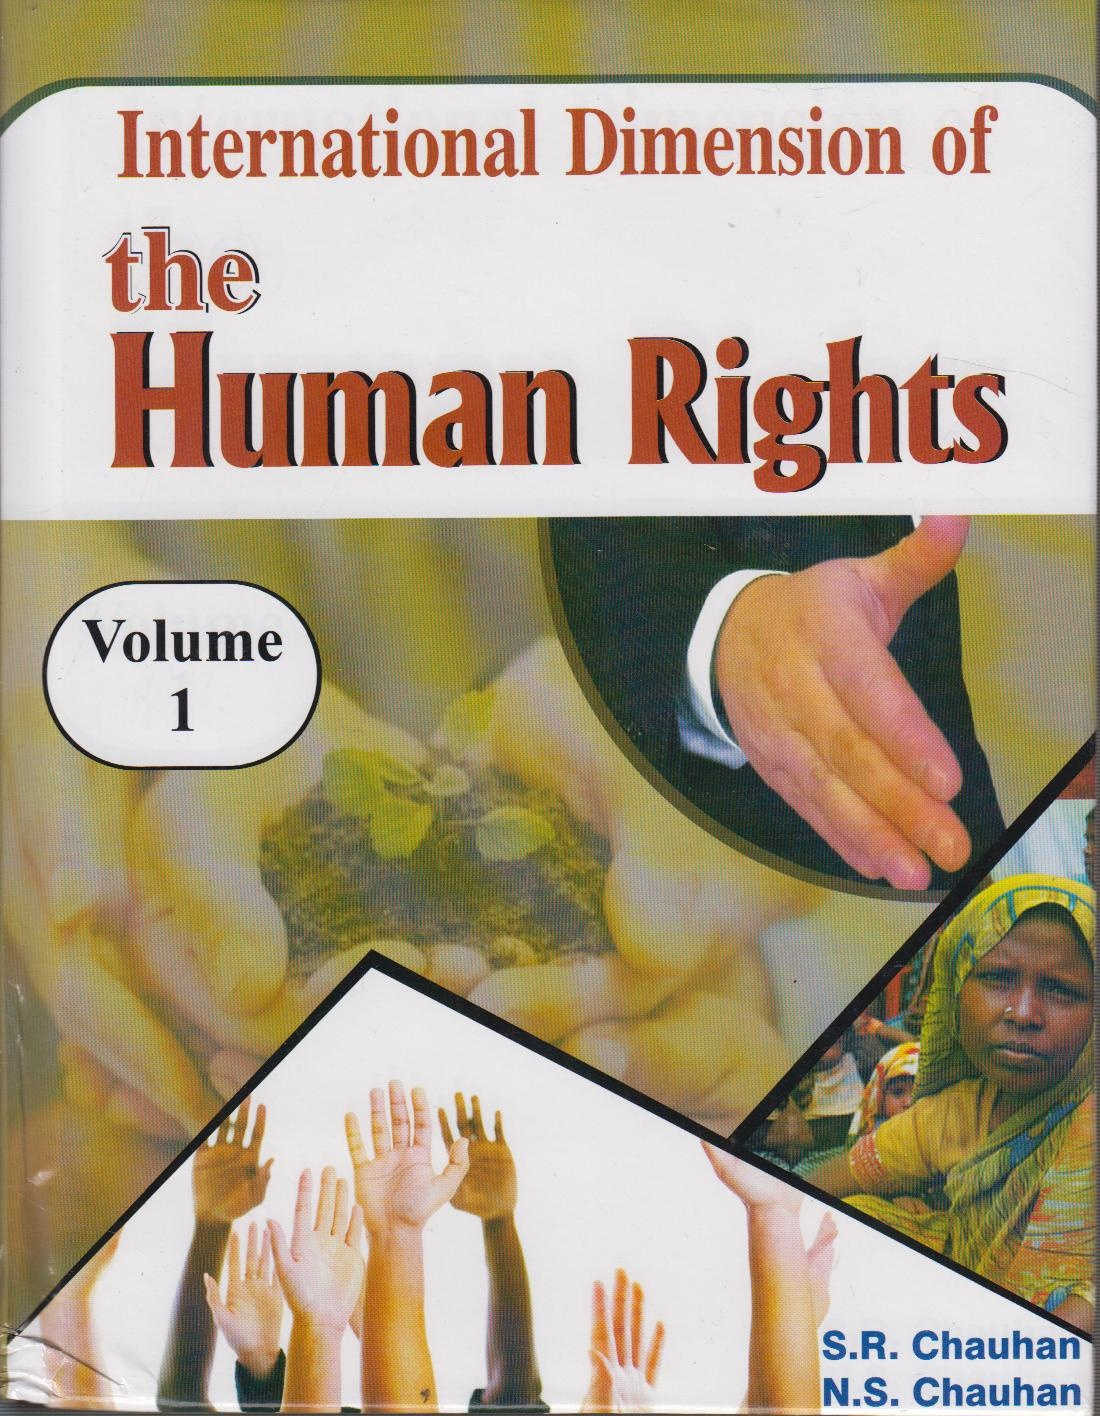 International Dimension of the Human Rights (Vol.1 - 4) by N S ChauhanS R Chauhan on Textnook.com